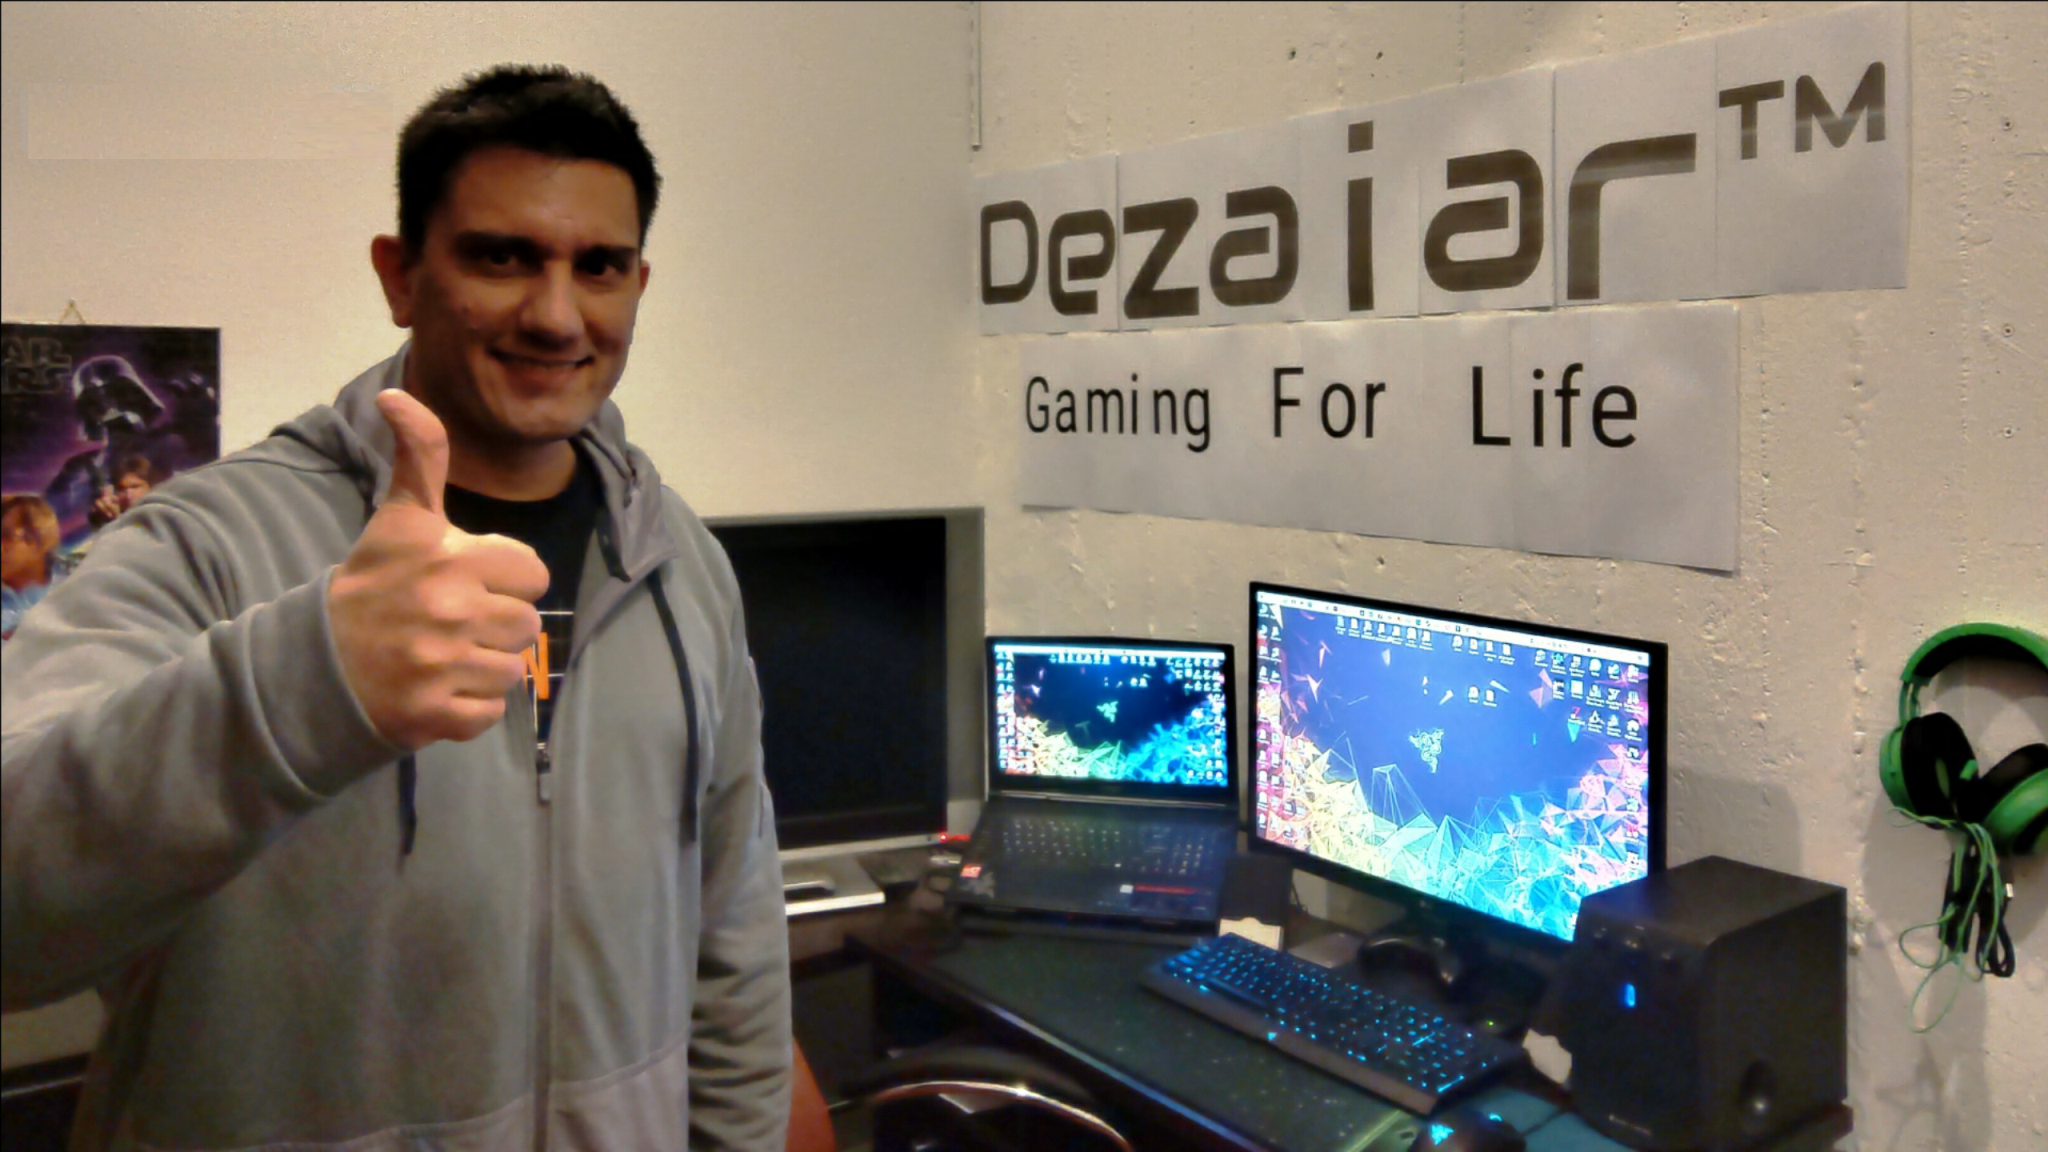 Dezaiar™ Gaming For Life™